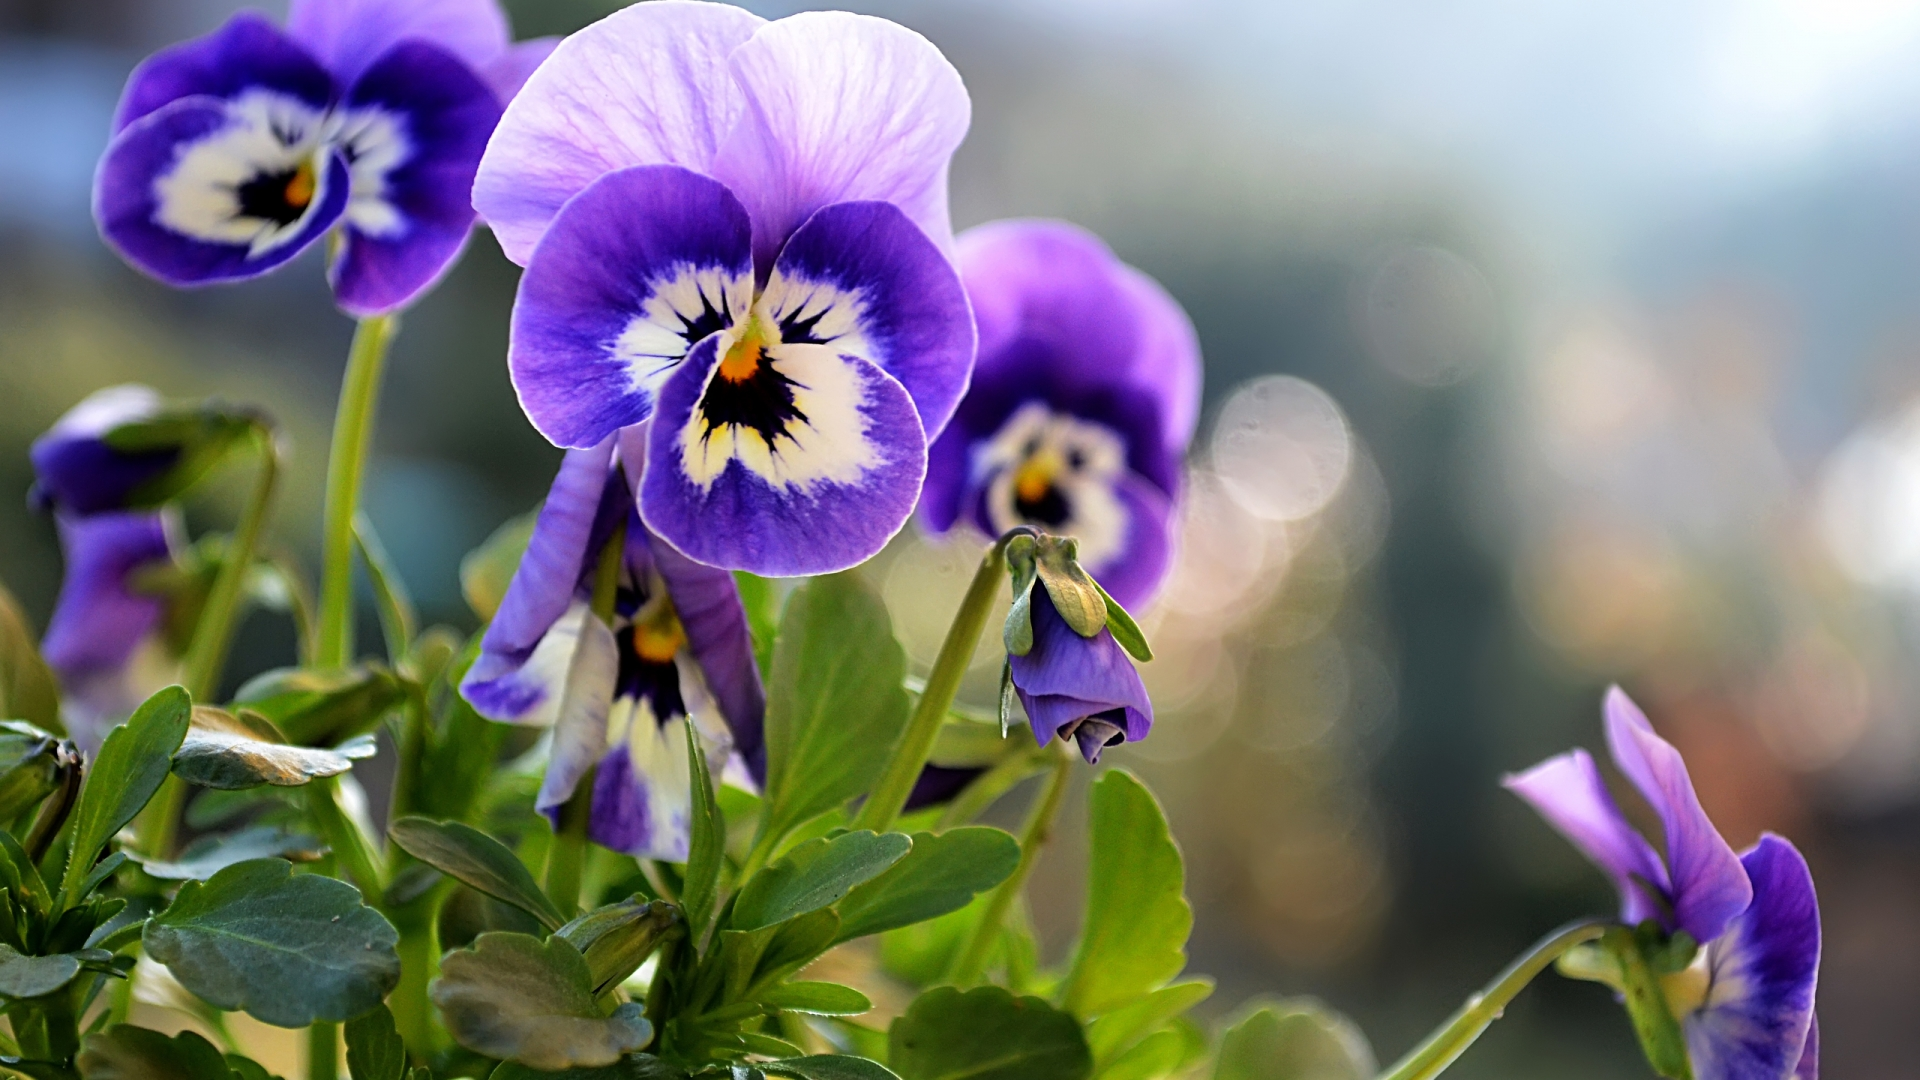 Beautiful Pansies Wallpaper